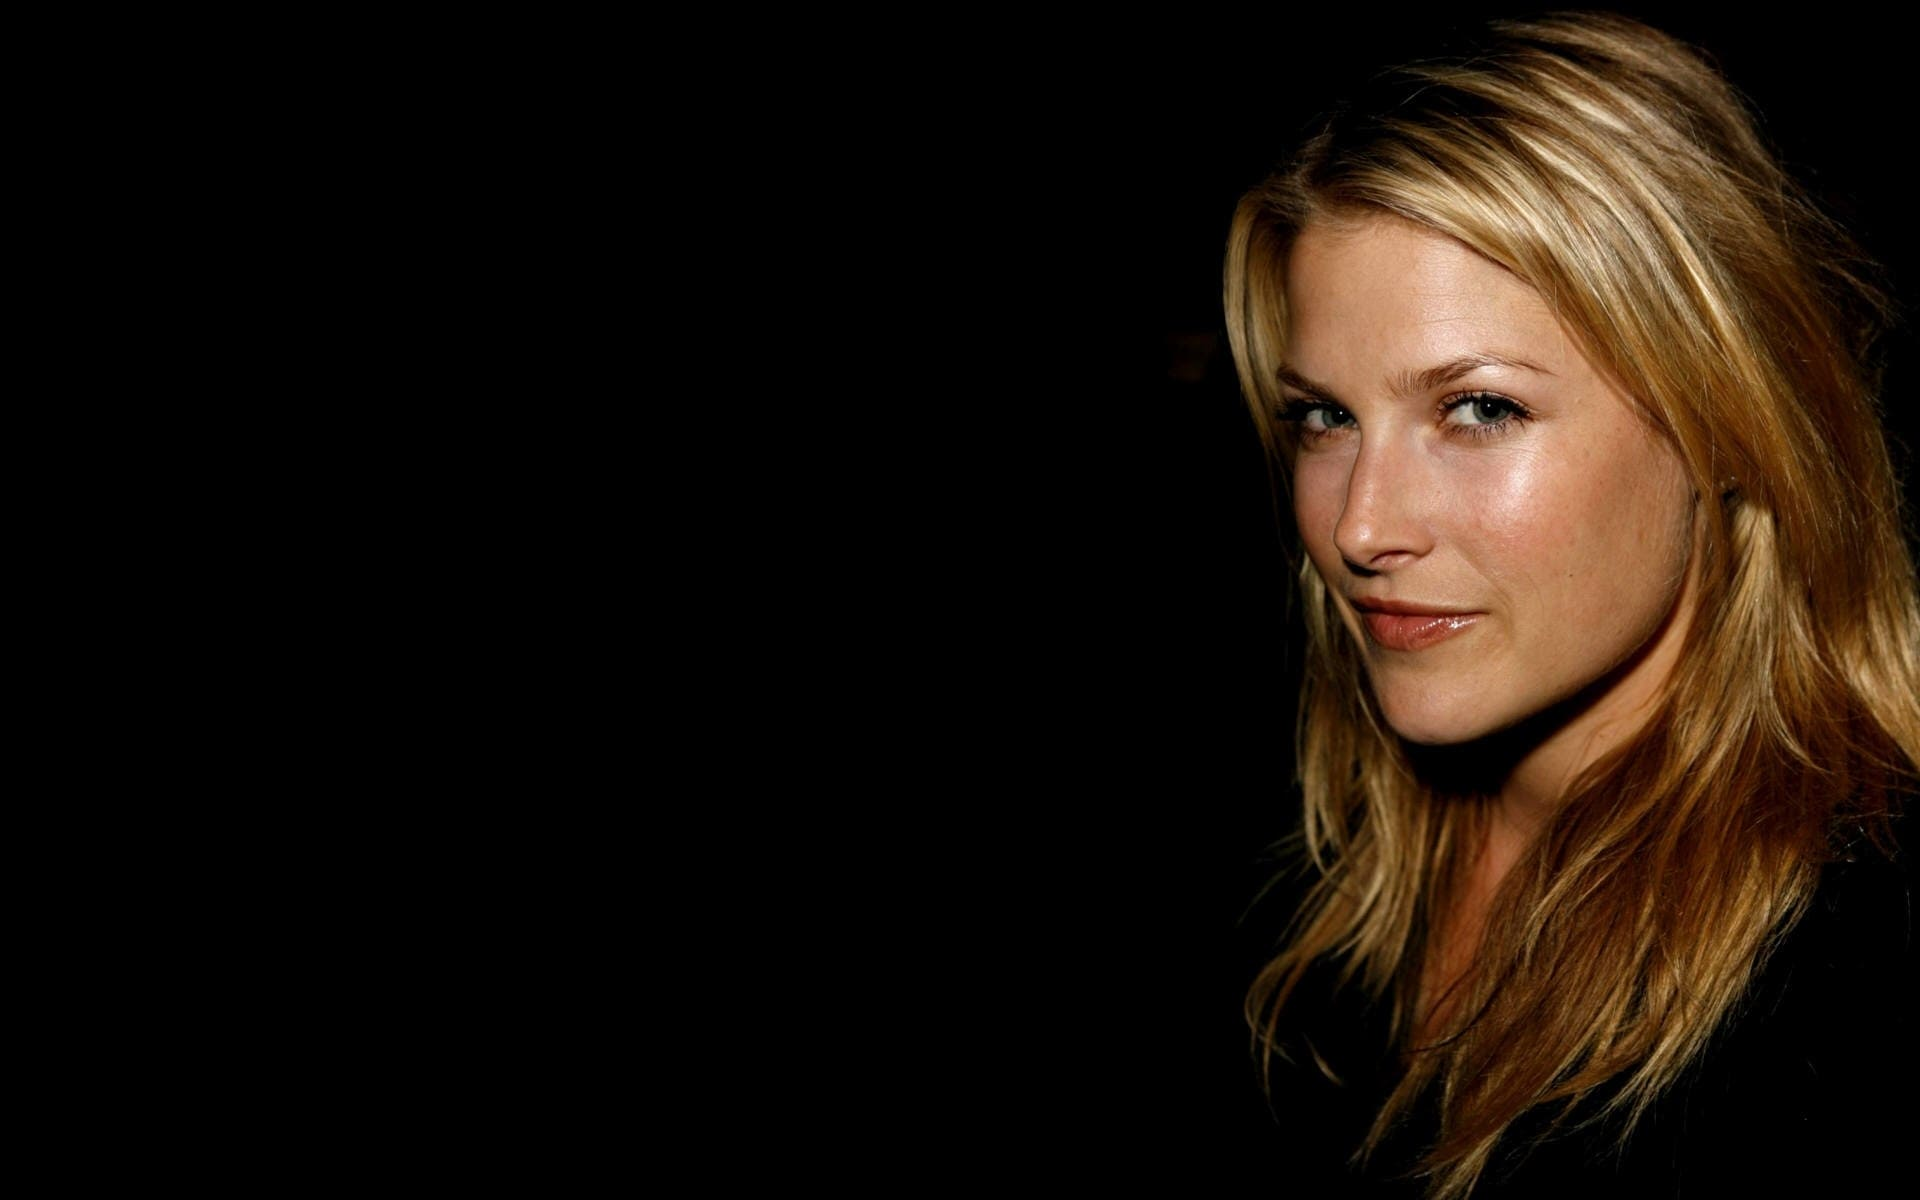 Ali Larter Full hd wallpapers